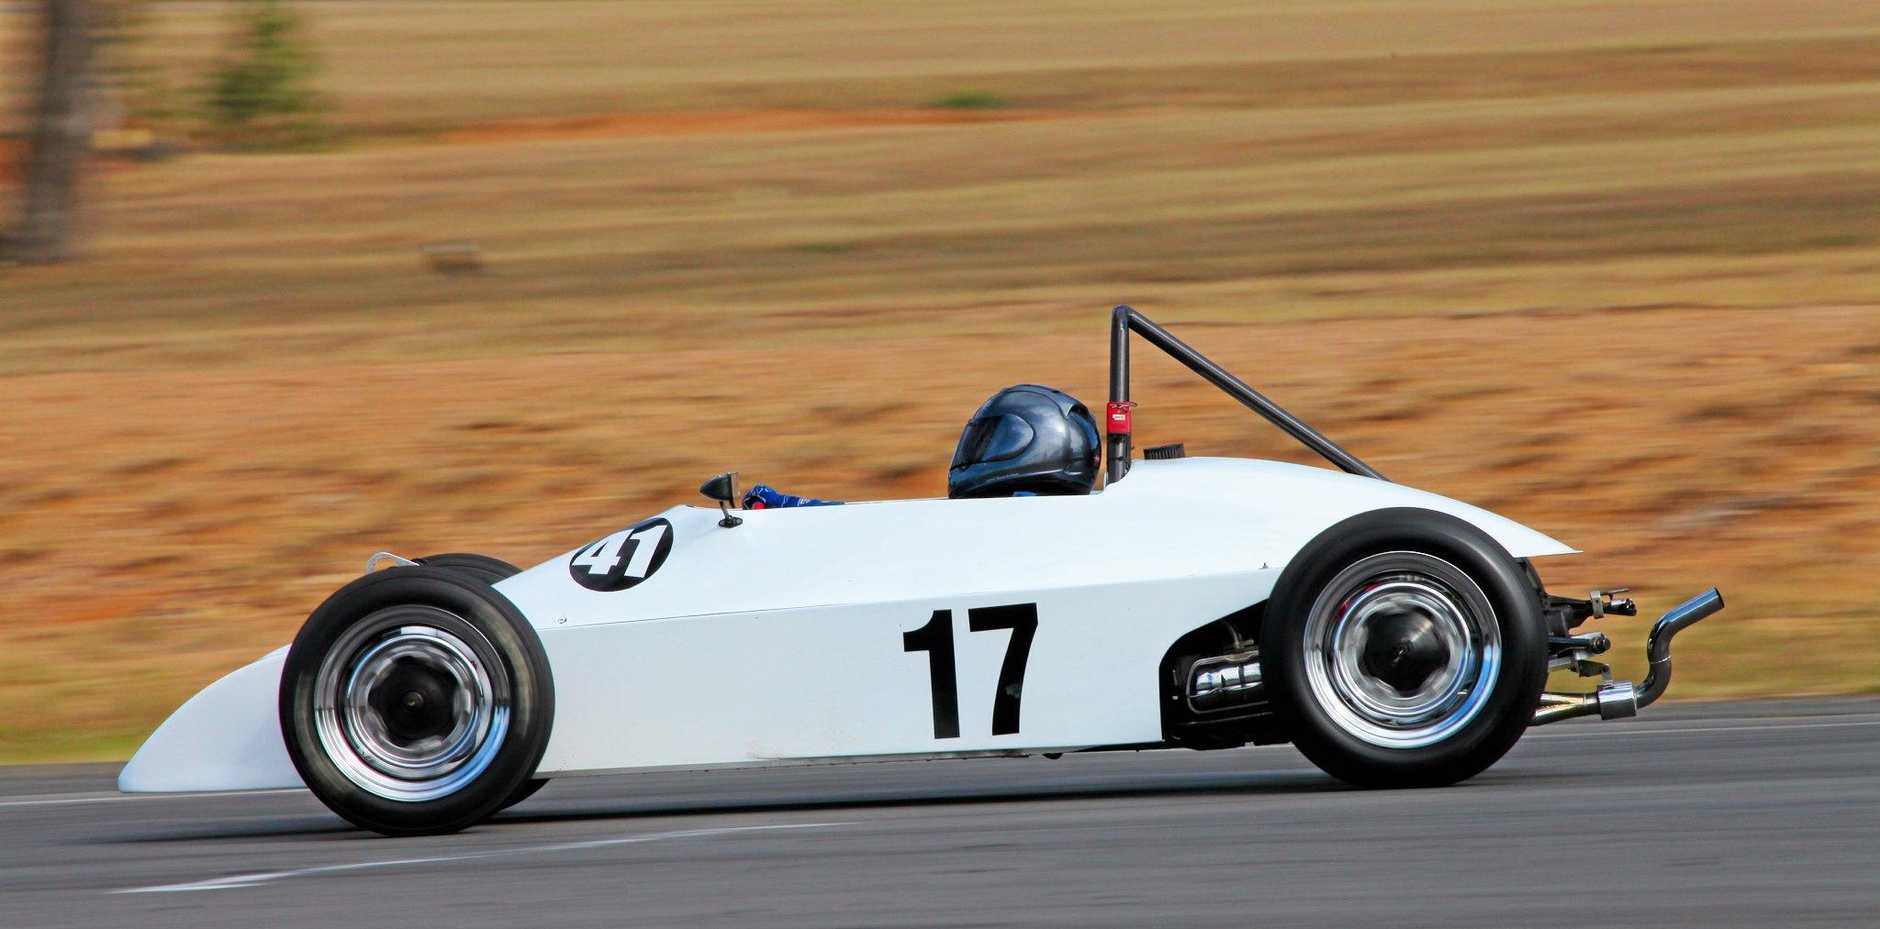 SPEED: Warwick and District Sporting Car Club secretary John Torr placed in the Queensland Super Sprints at Morgan Park Raceway.